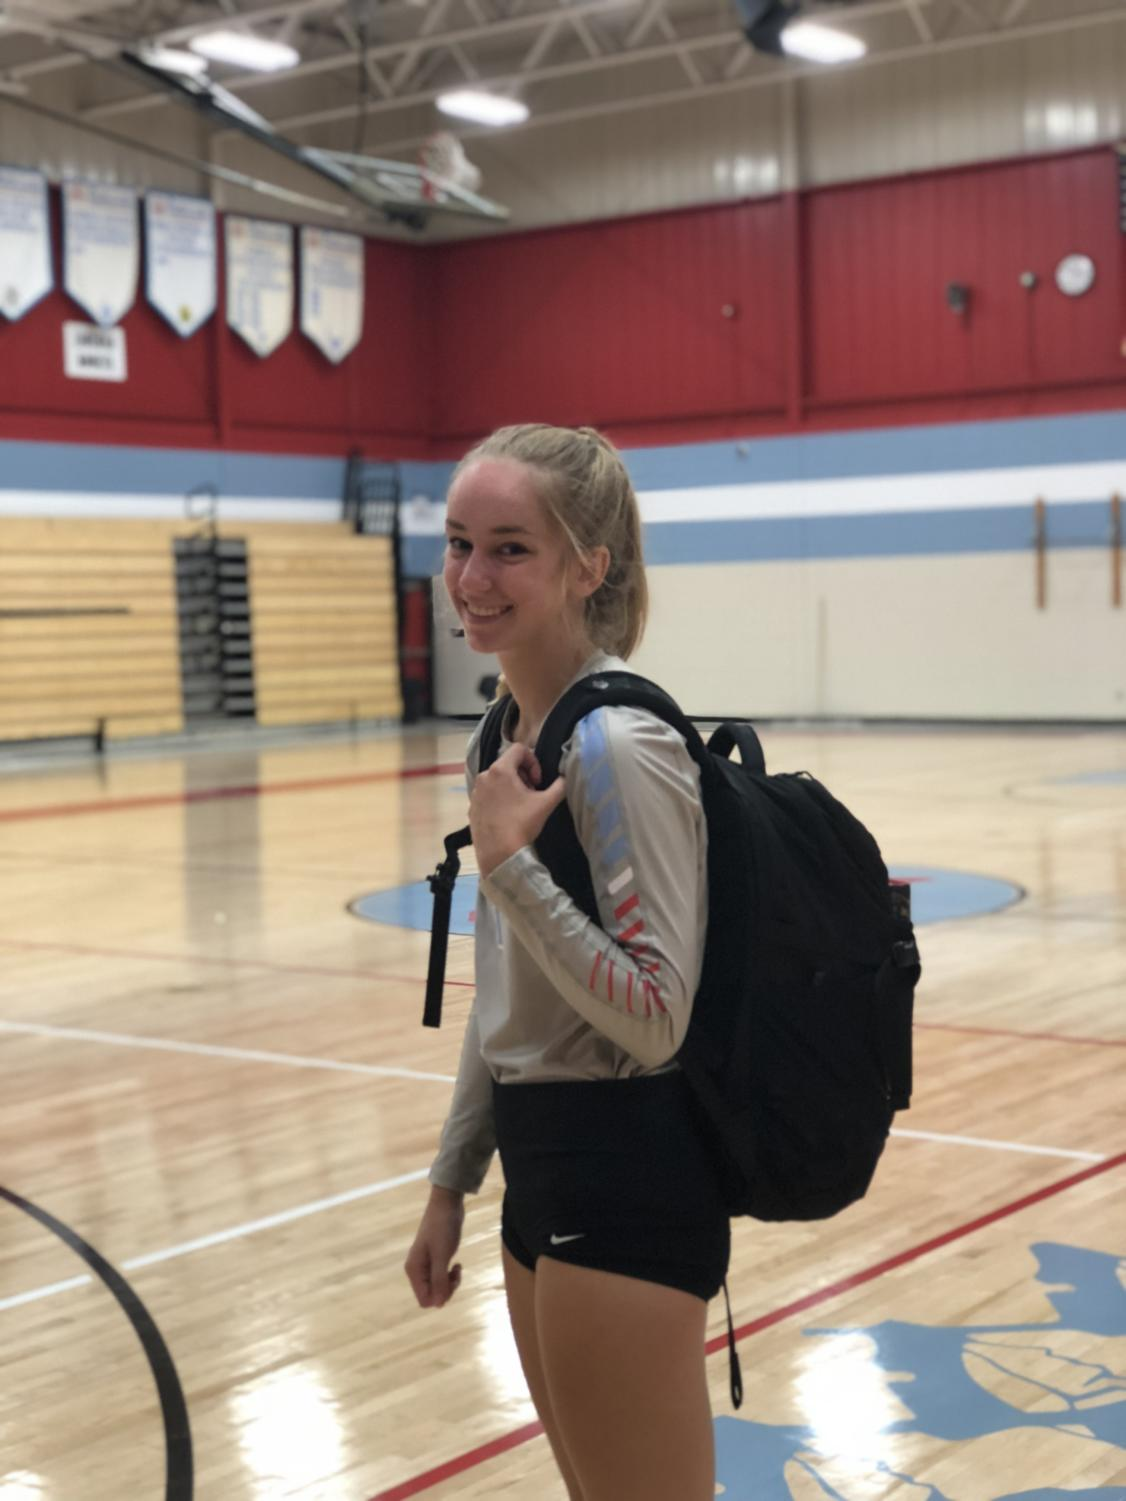 Sophomore Sara Croghan prepares for school and a volleyball game later that day.